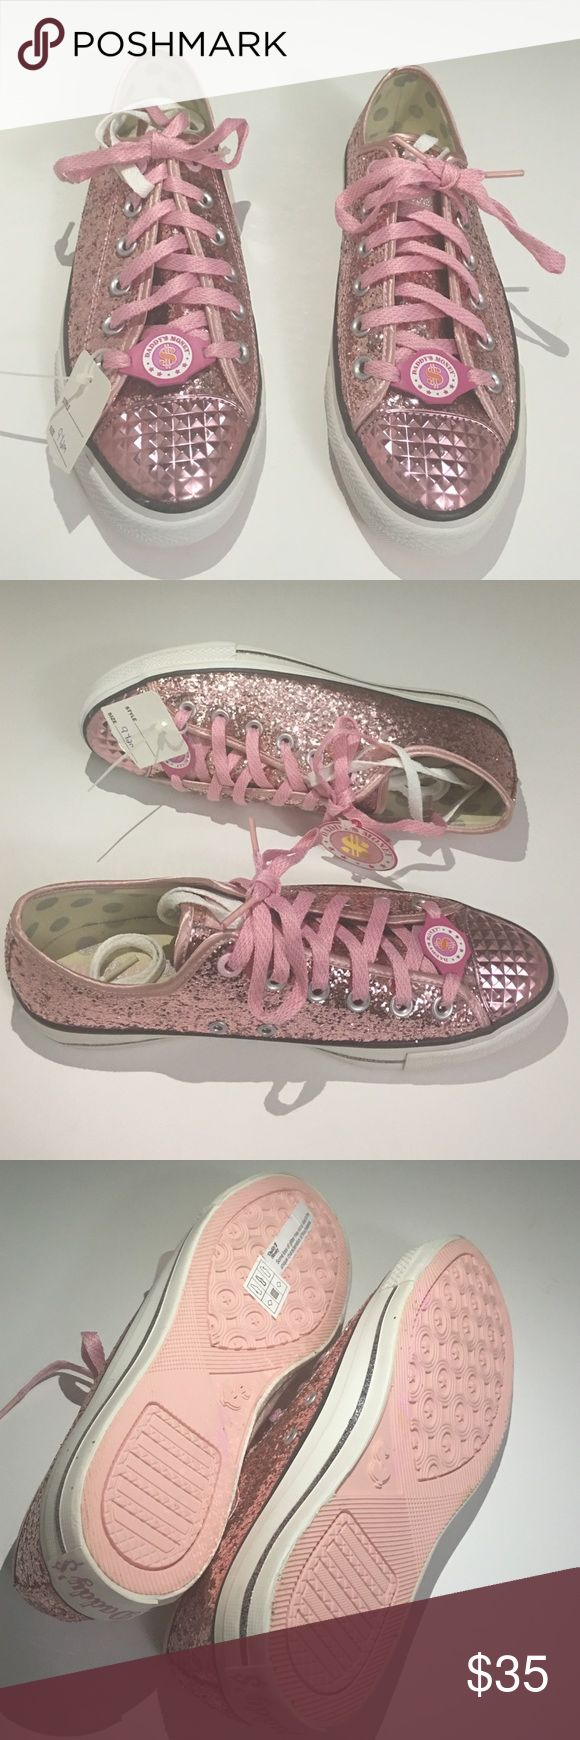 New Daddy's Money Skechers Sneakers Pretty in Pink is what you will be with these beauties. New with tags but no box these will look outstanding with jeans or leggings. Extra white shoestrings come with the shoes as well. The same shoes sale for $37 on eBay used these are new never  worn. Skechers Shoes Sneakers